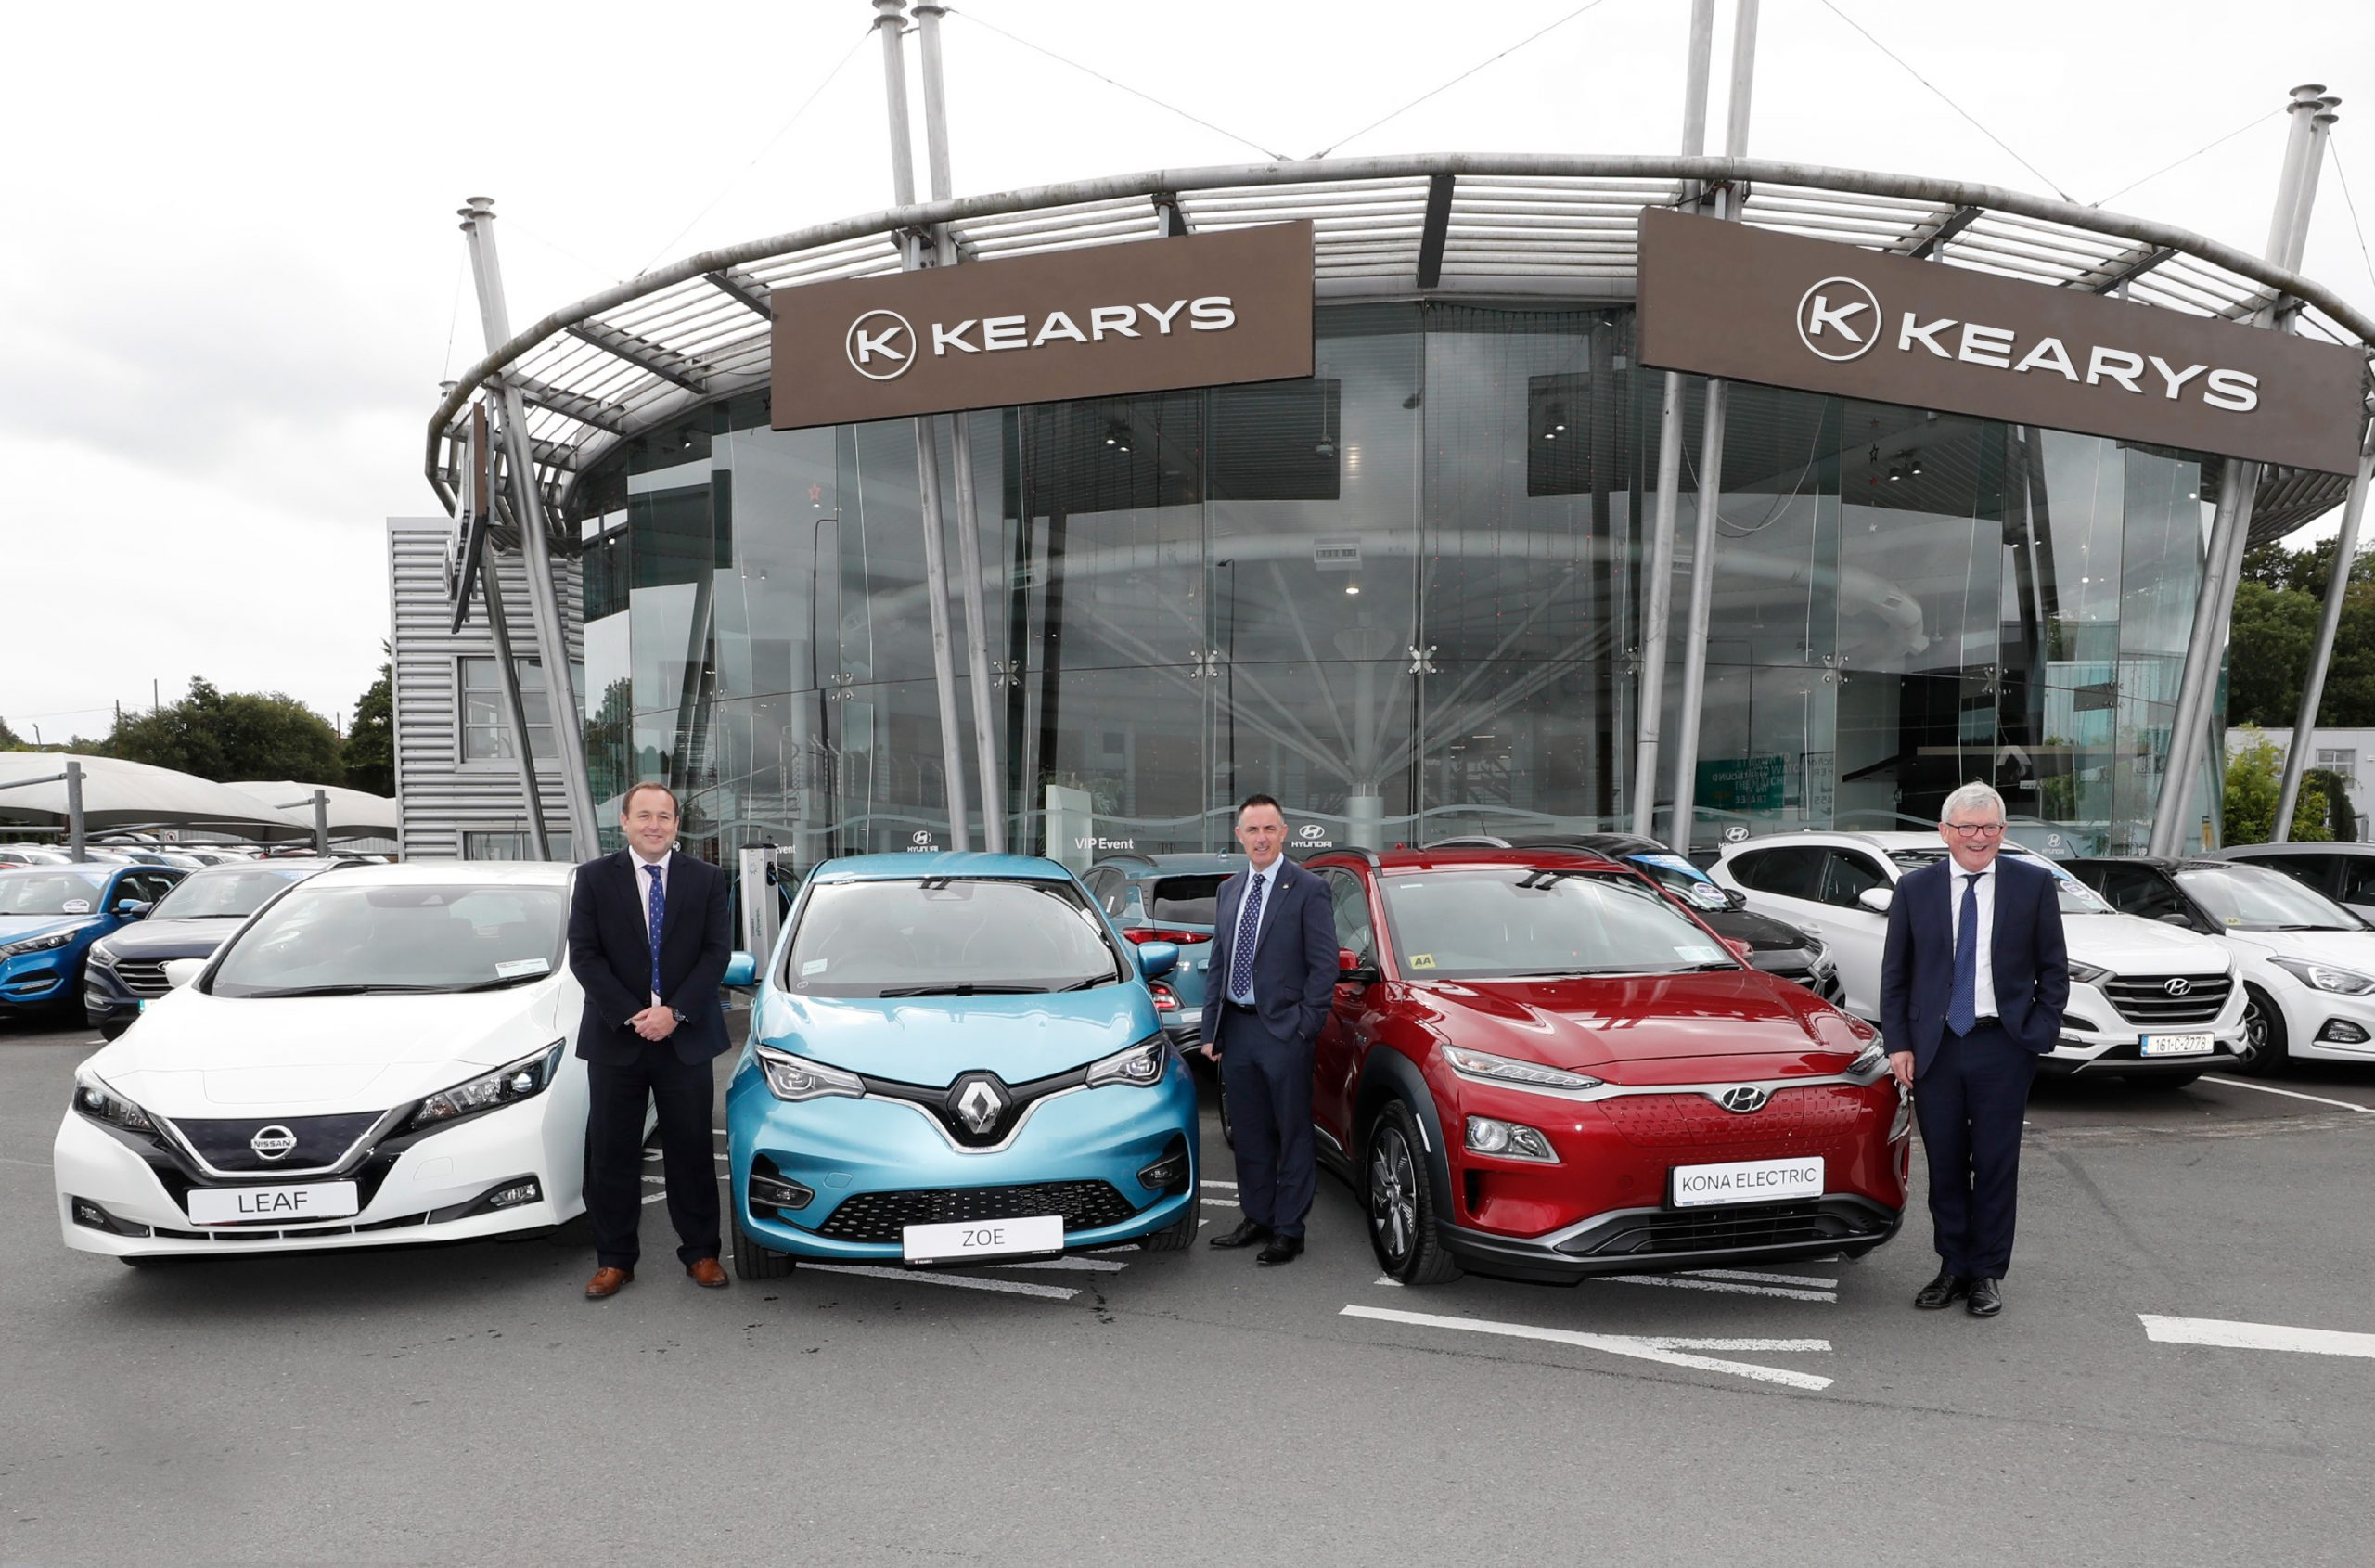 Pinergy and Kearys drive the EV charge